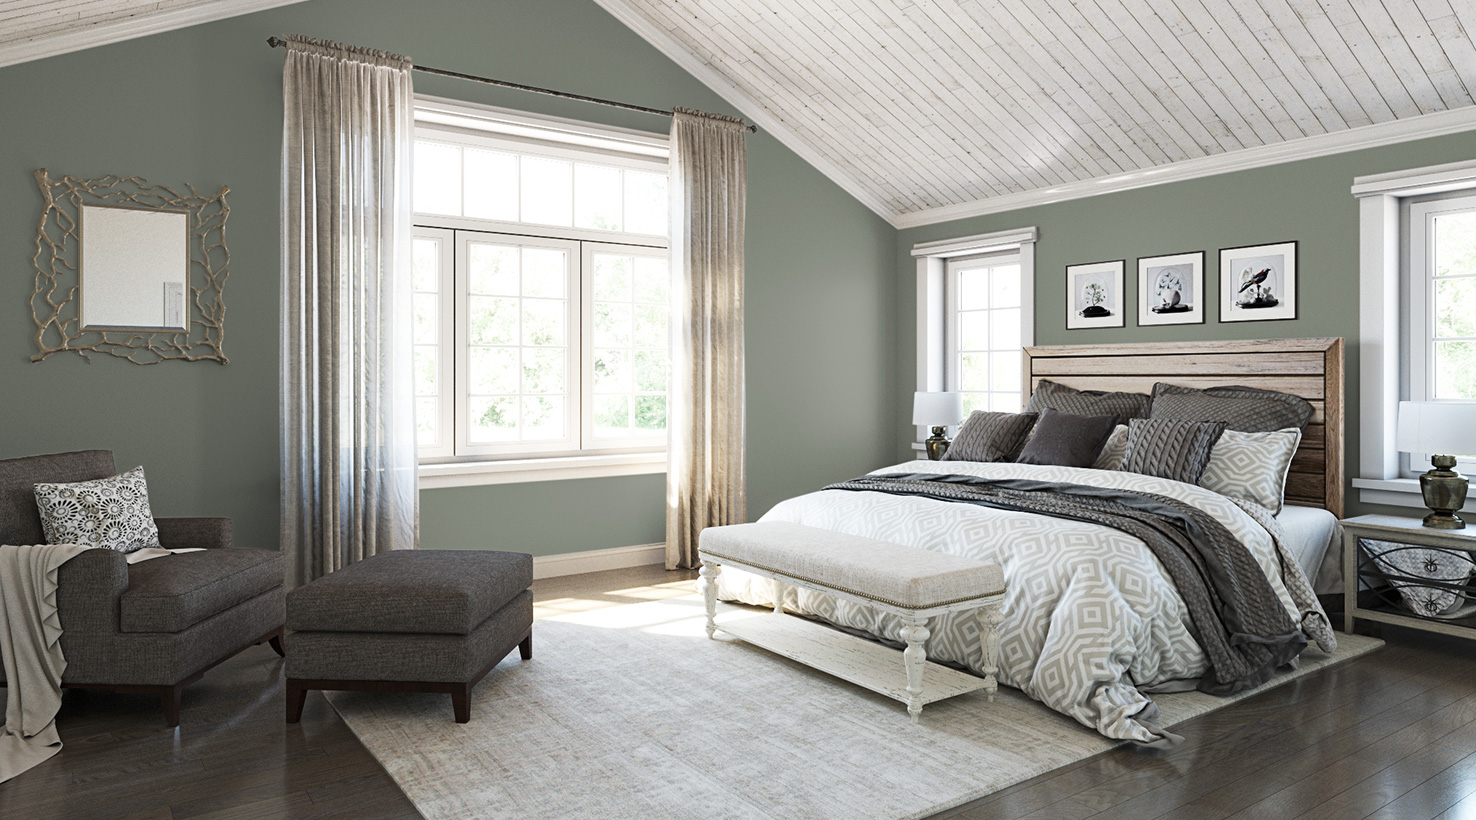 Bedroom Paint Color Ideas | Inspiration Gallery | Sherwin ...